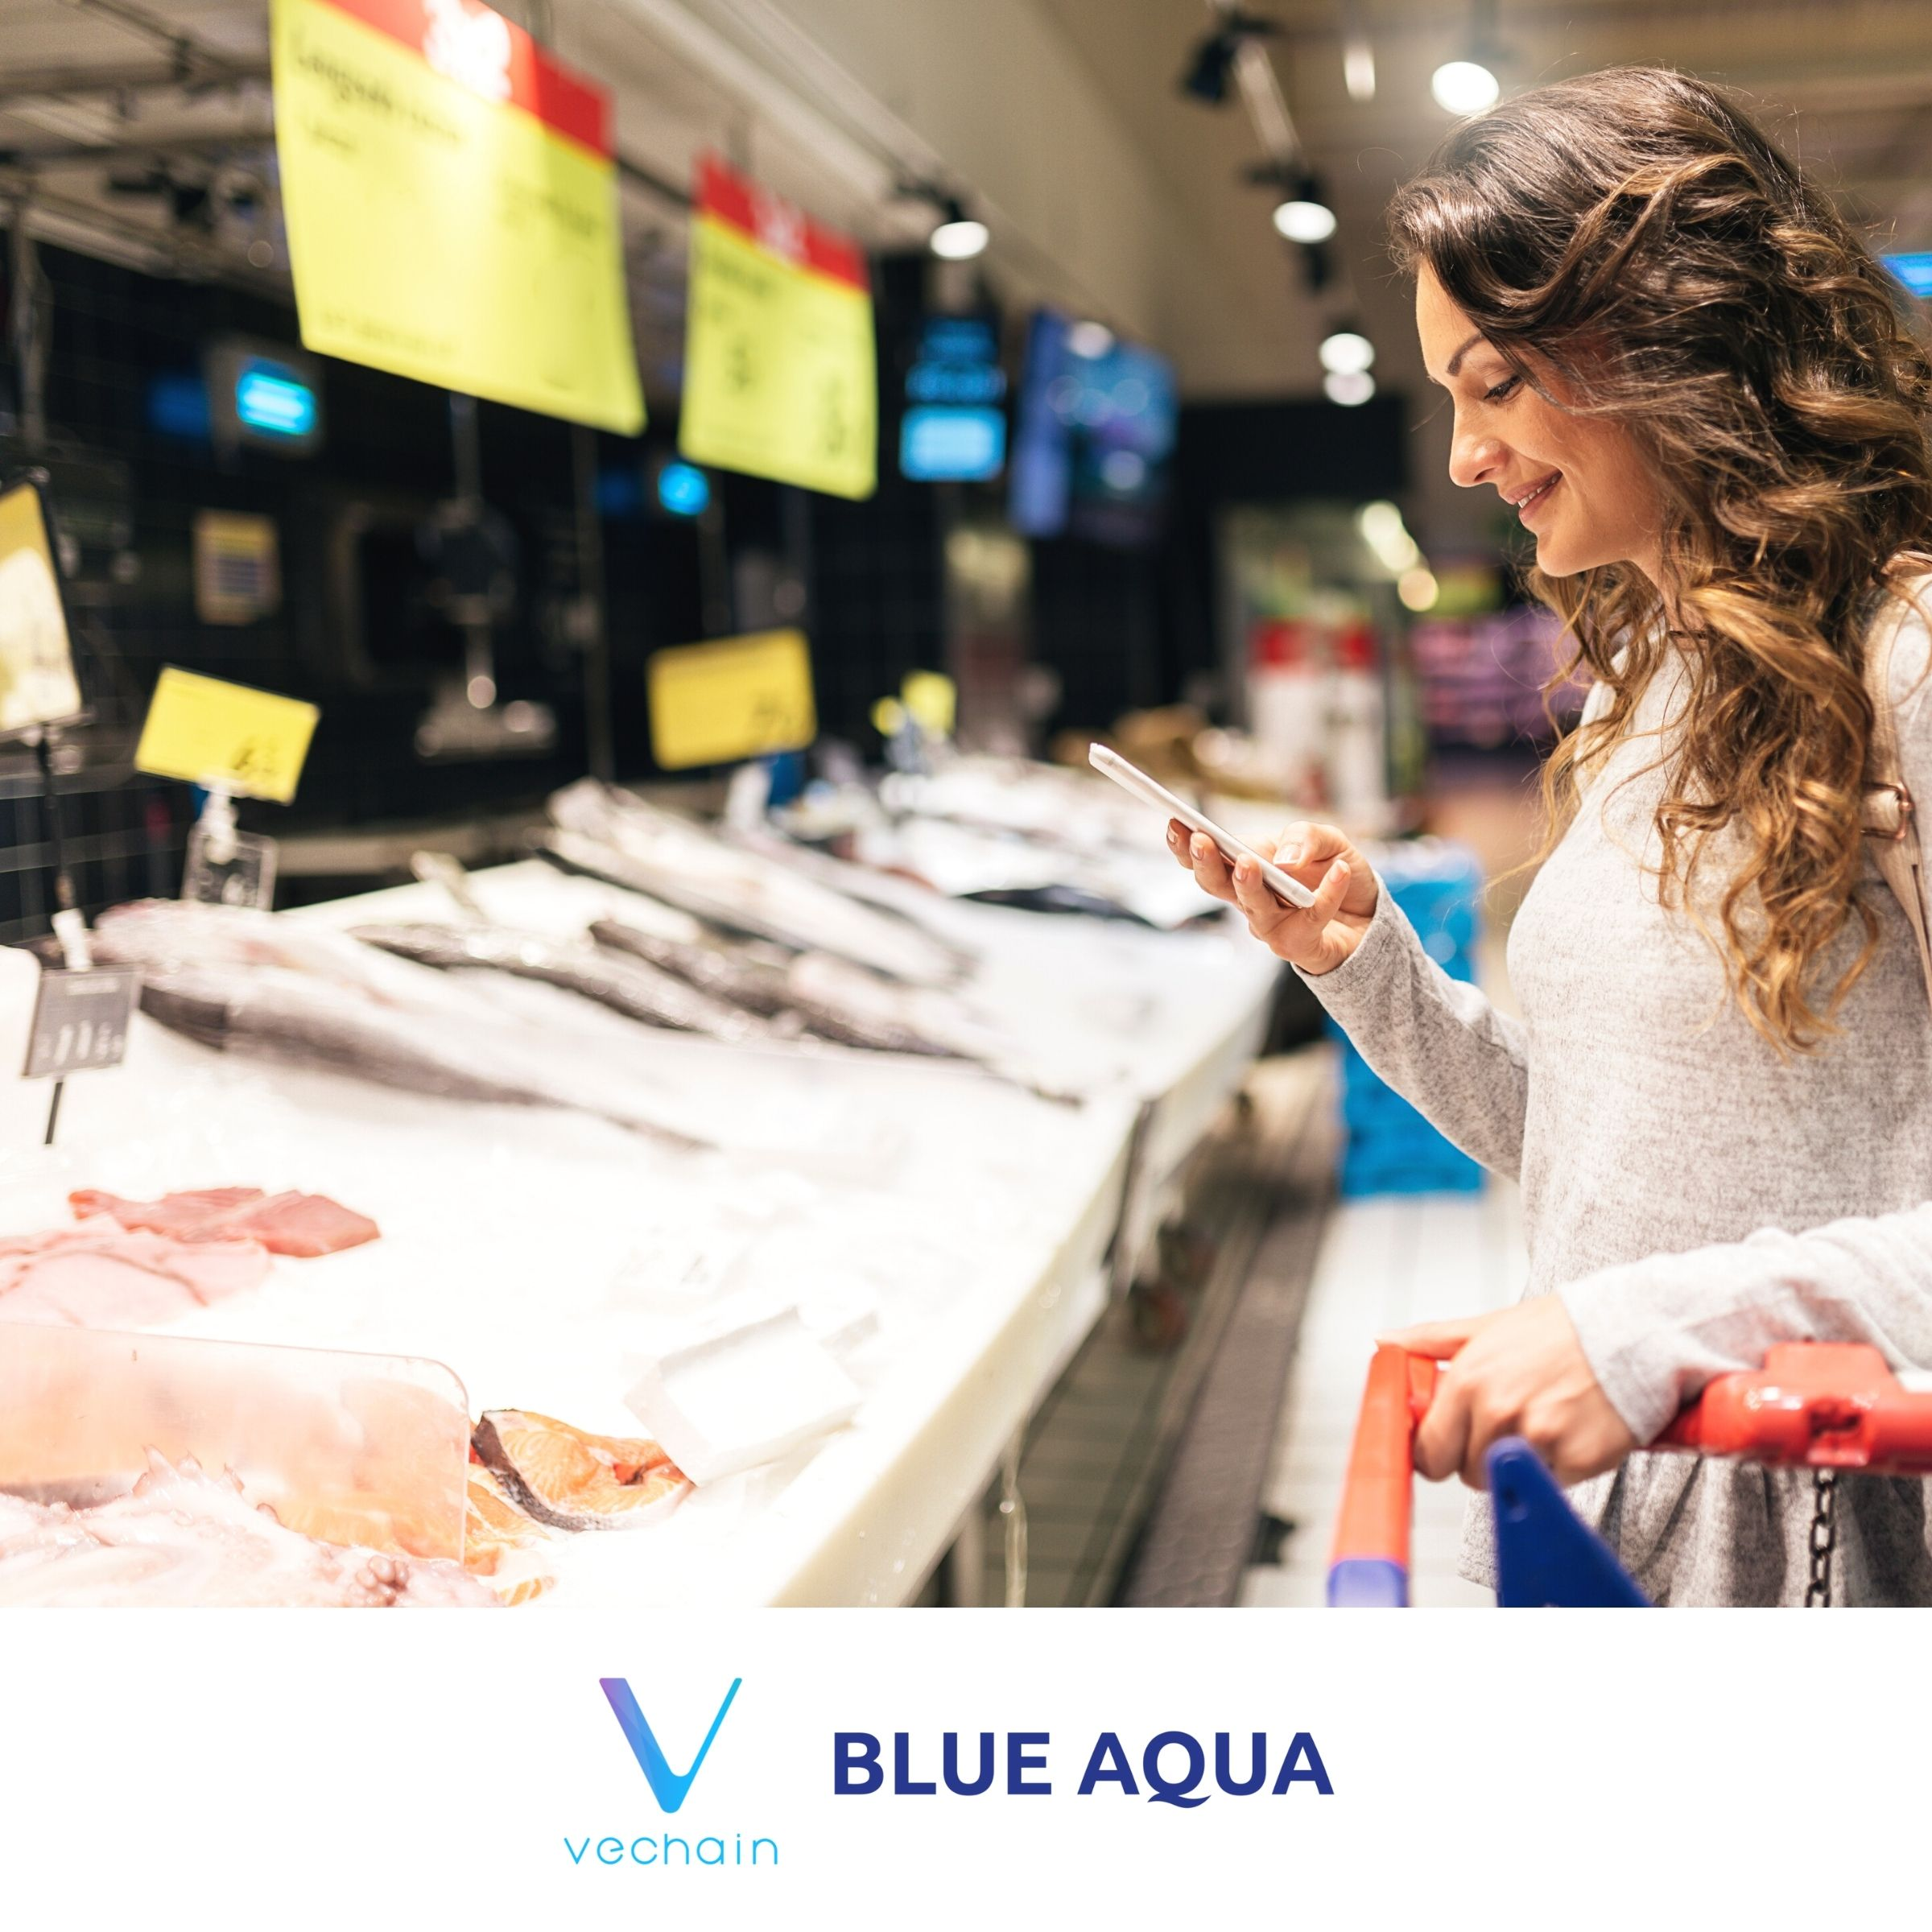 Blue Aqua partners up with VeChain to adopt blockchain traceability in shrimp farming